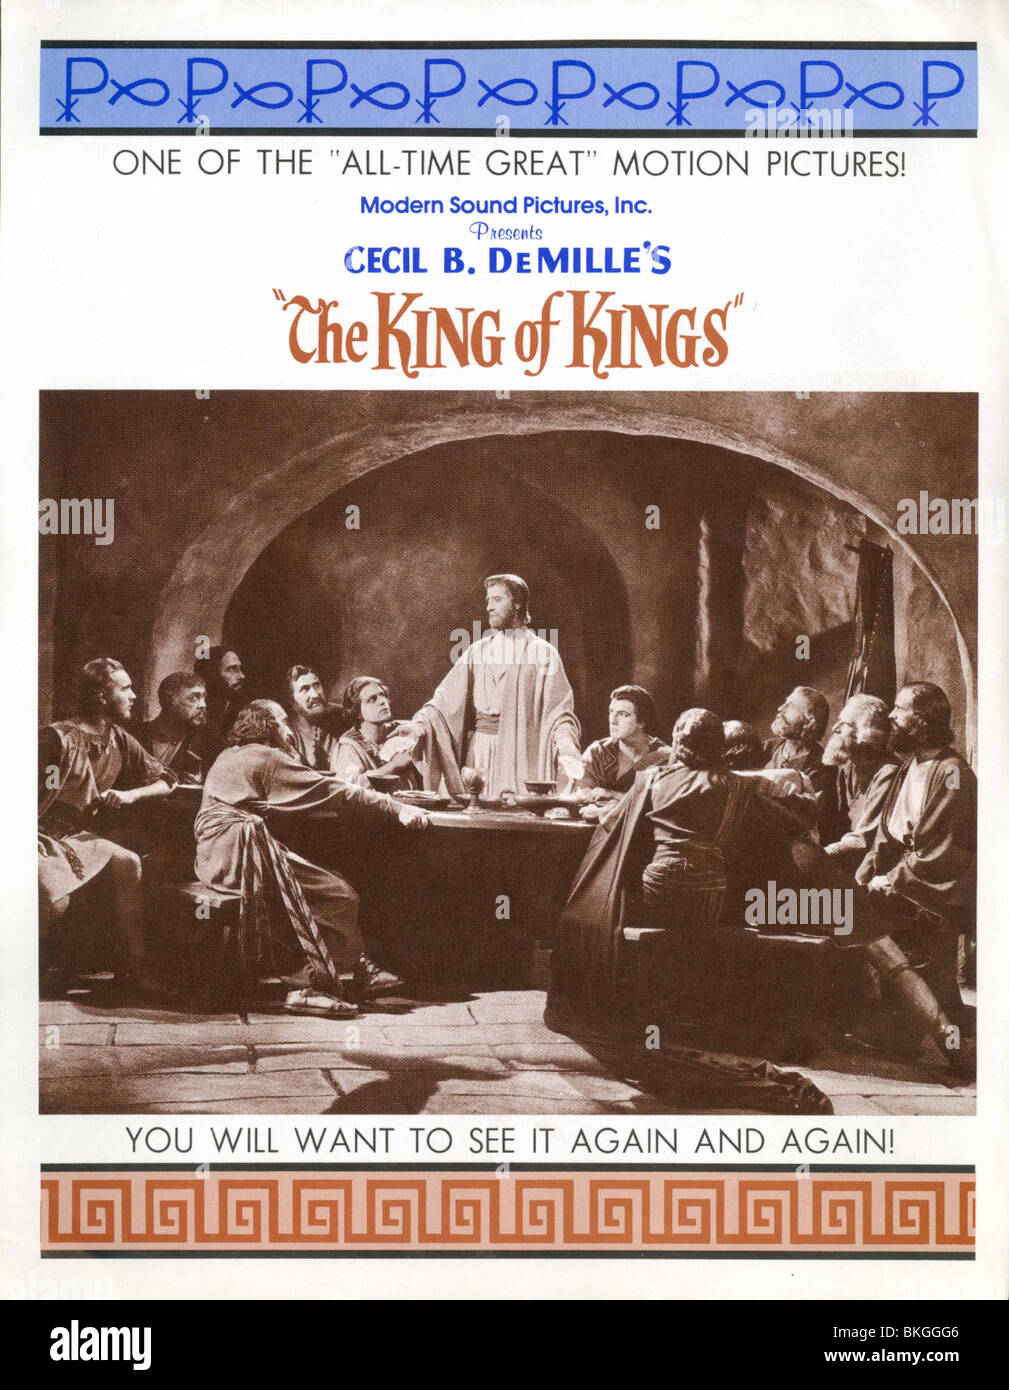 THE KING OF KINGS (1927) POSTER KOKG 001PP - Stock Image